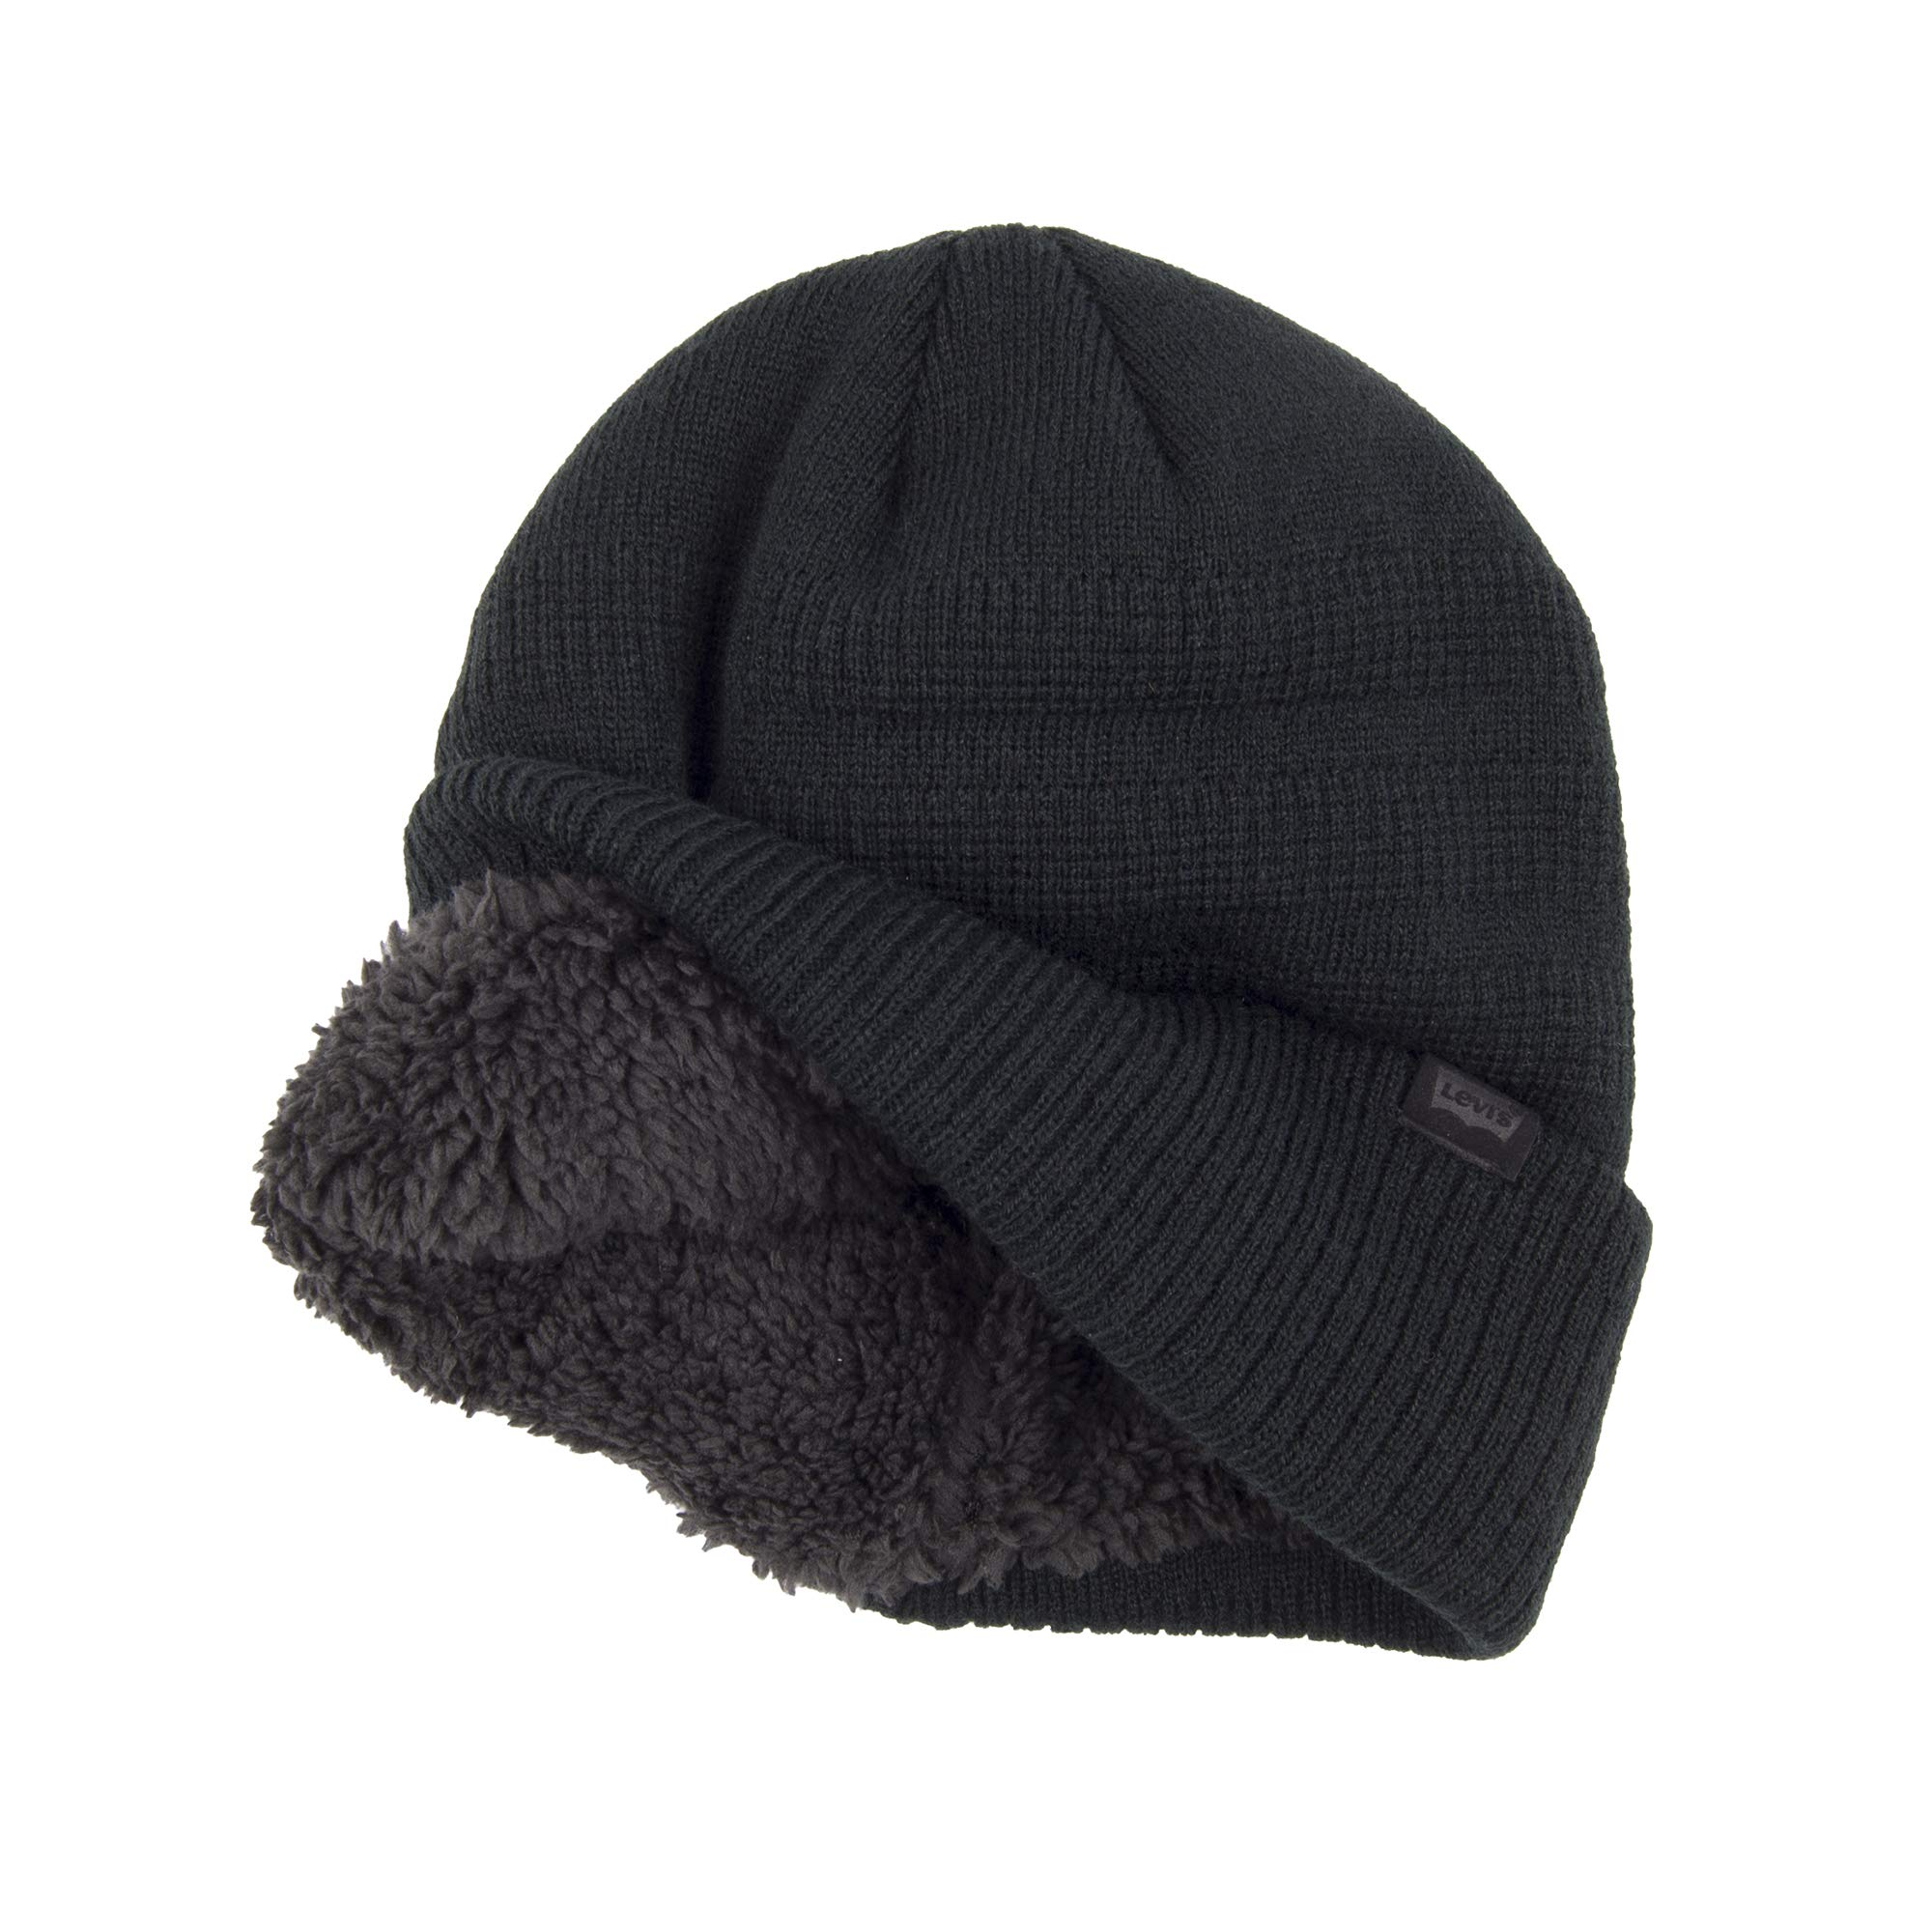 544114ff69d896 Amazon.com: Men's Accessories Shop: Cold Weather Hats